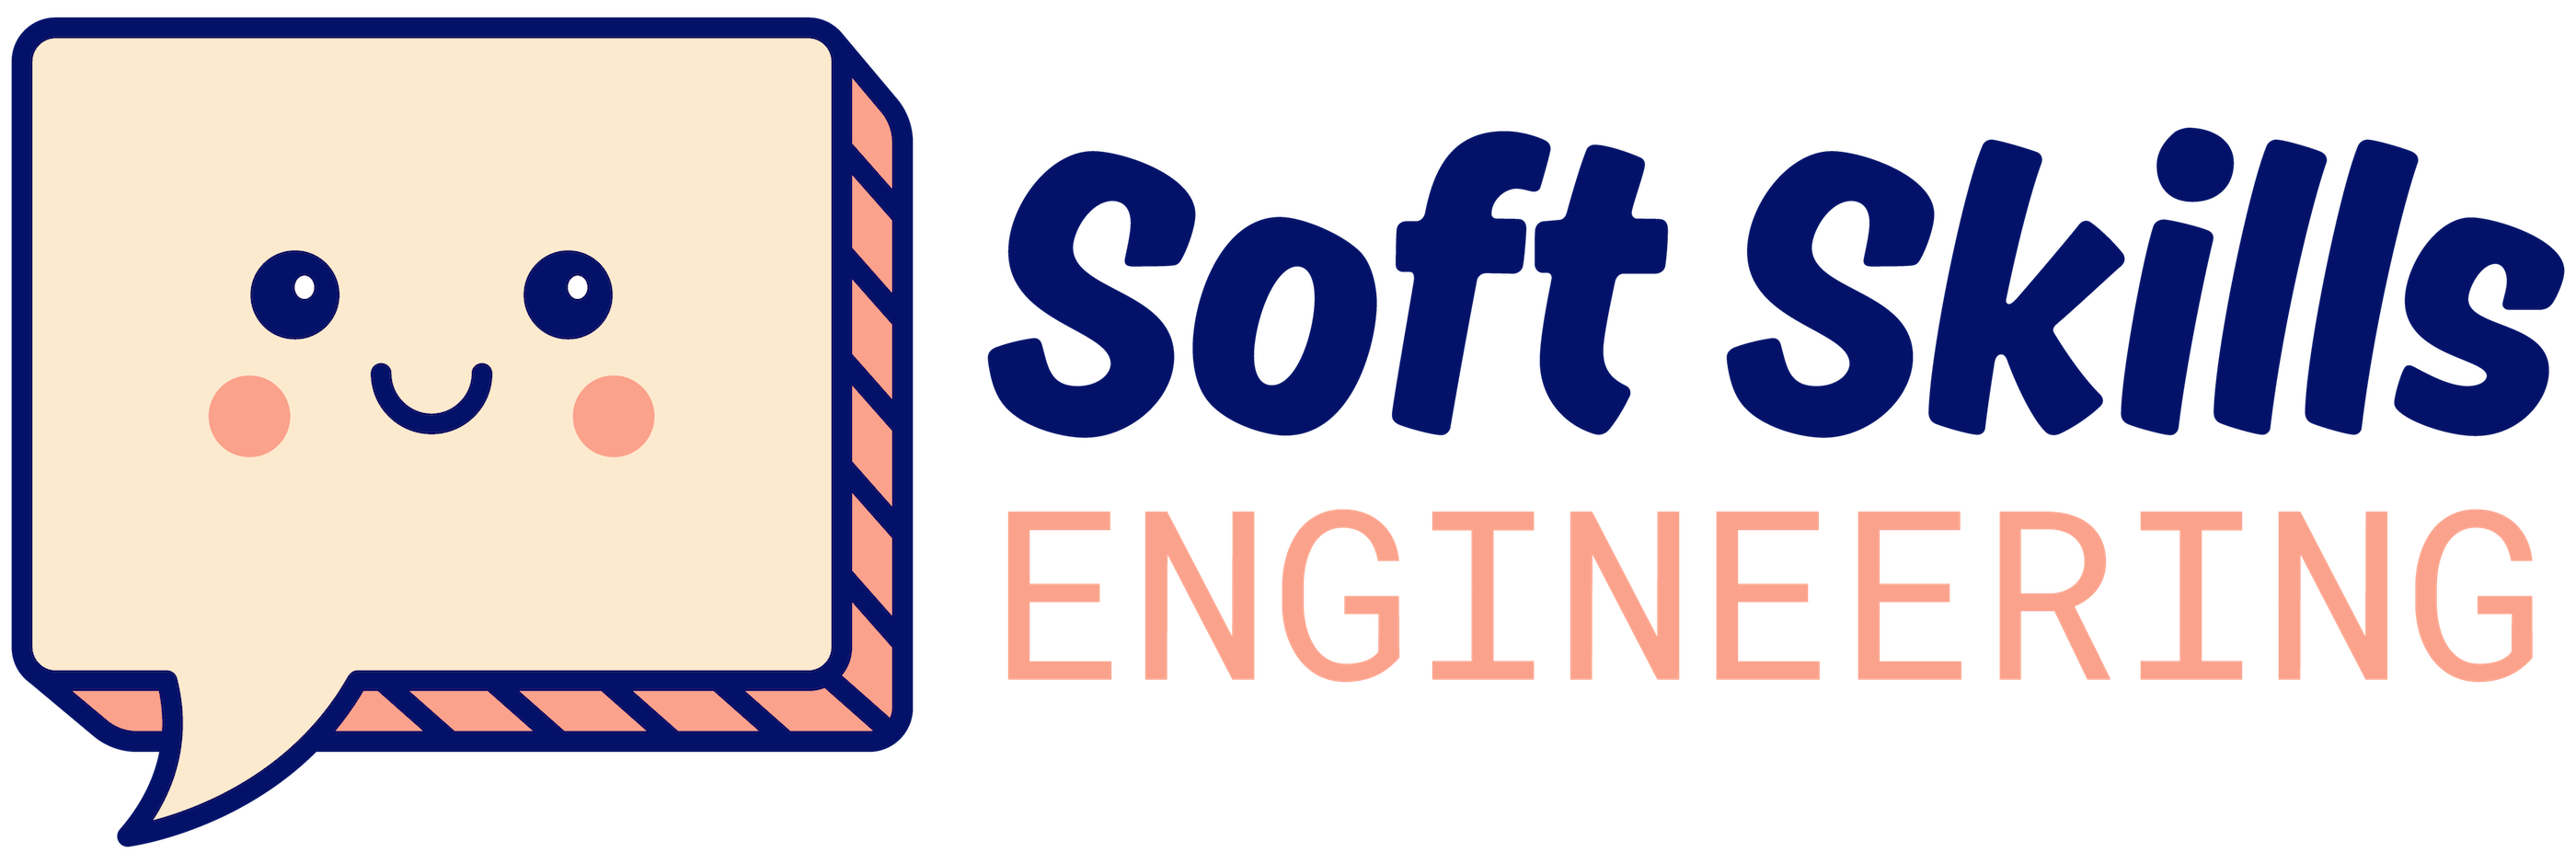 Soft Skills Engineering logo with a friendly speech bubble